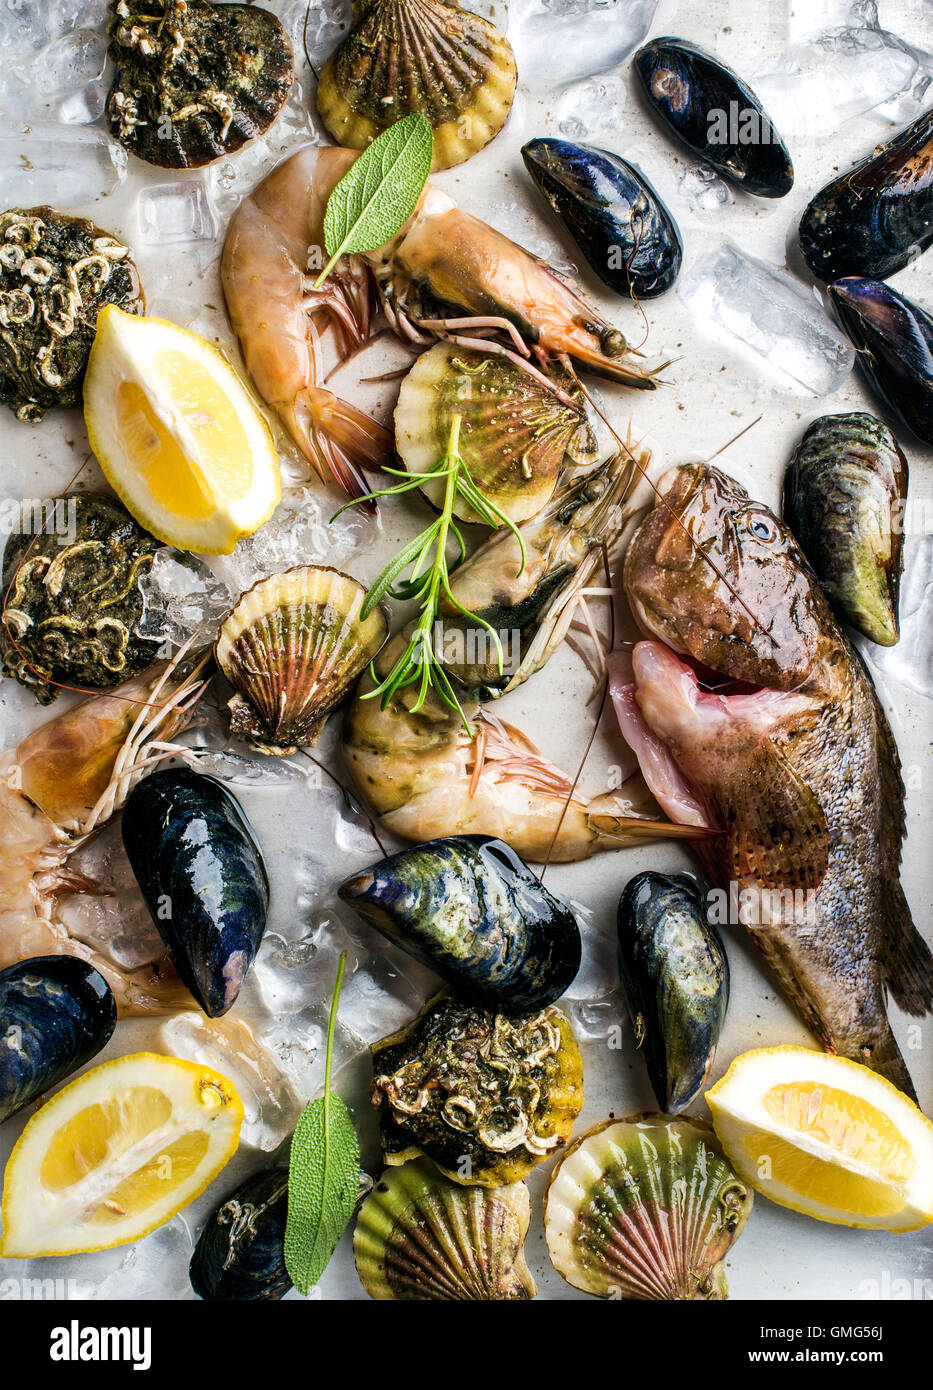 Fresh seafood with herbs and lemon on ice. Prawns, fish, mussels, scallops over steel metal tray - Stock Image